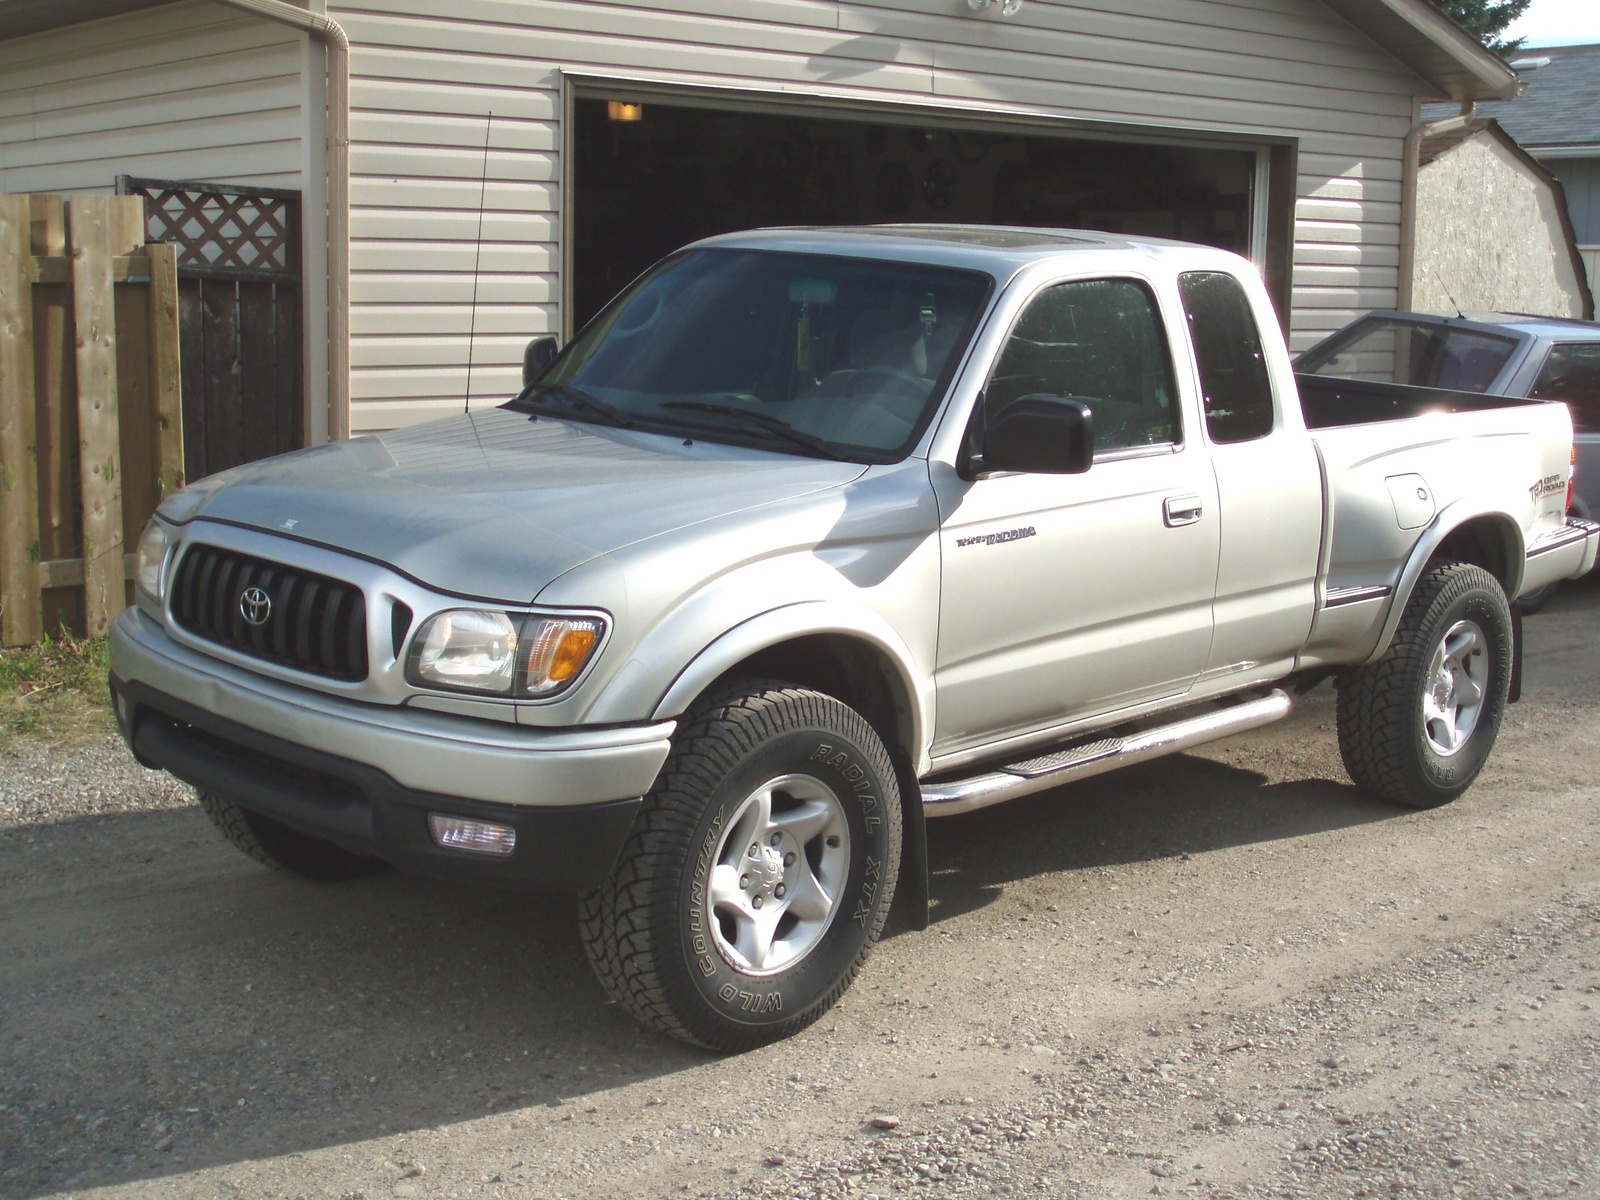 2002 Toyota Tacoma 2 Dr V6 4WD Extended Cab SB picture